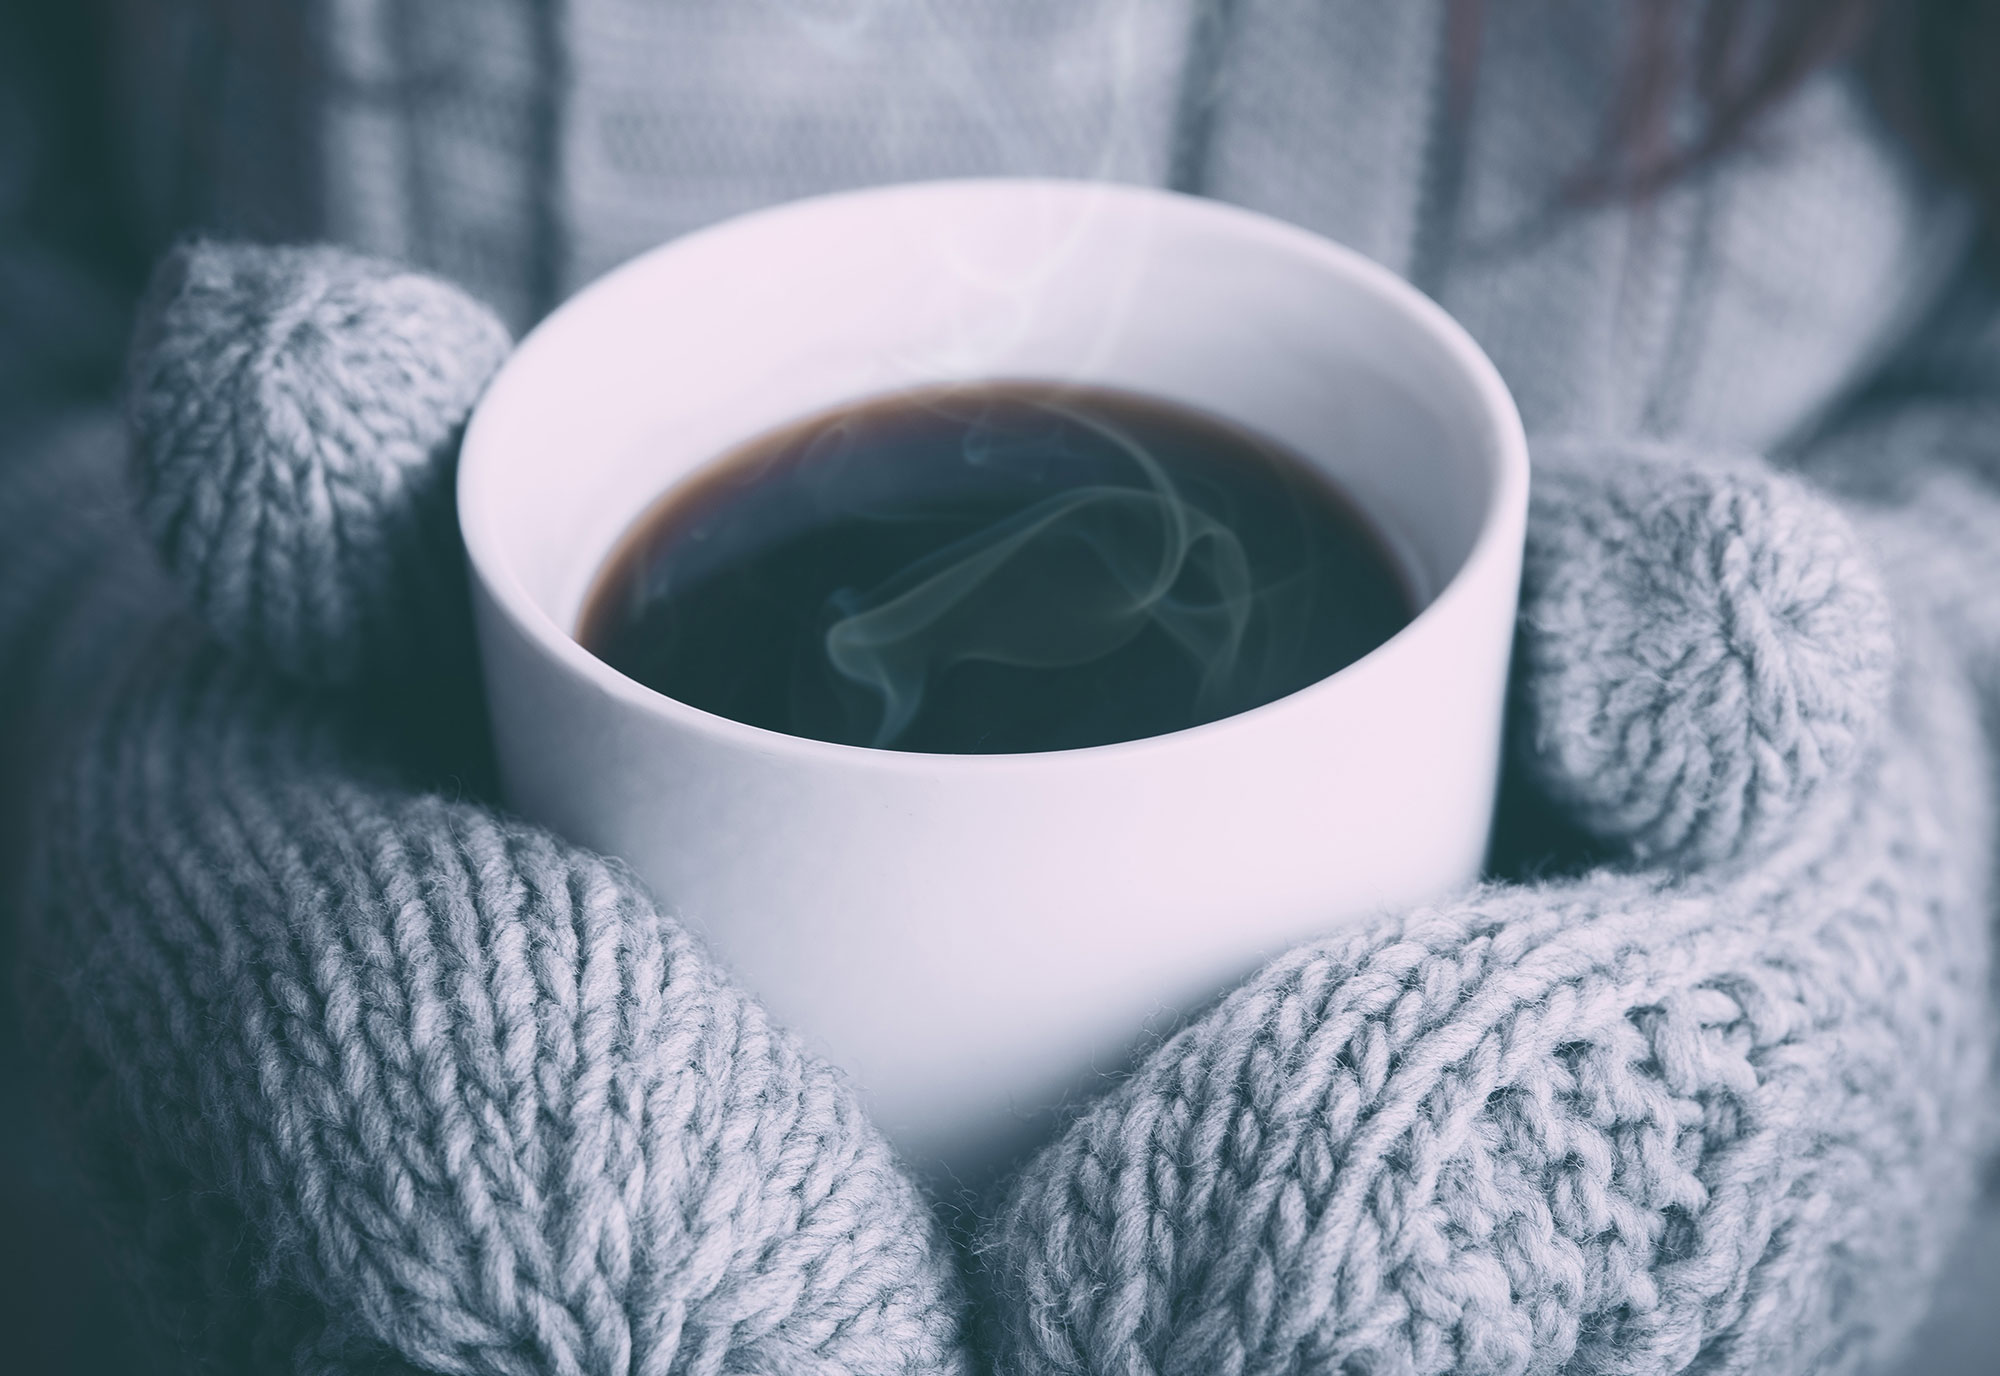 Wooly gloves holding a hot coffee